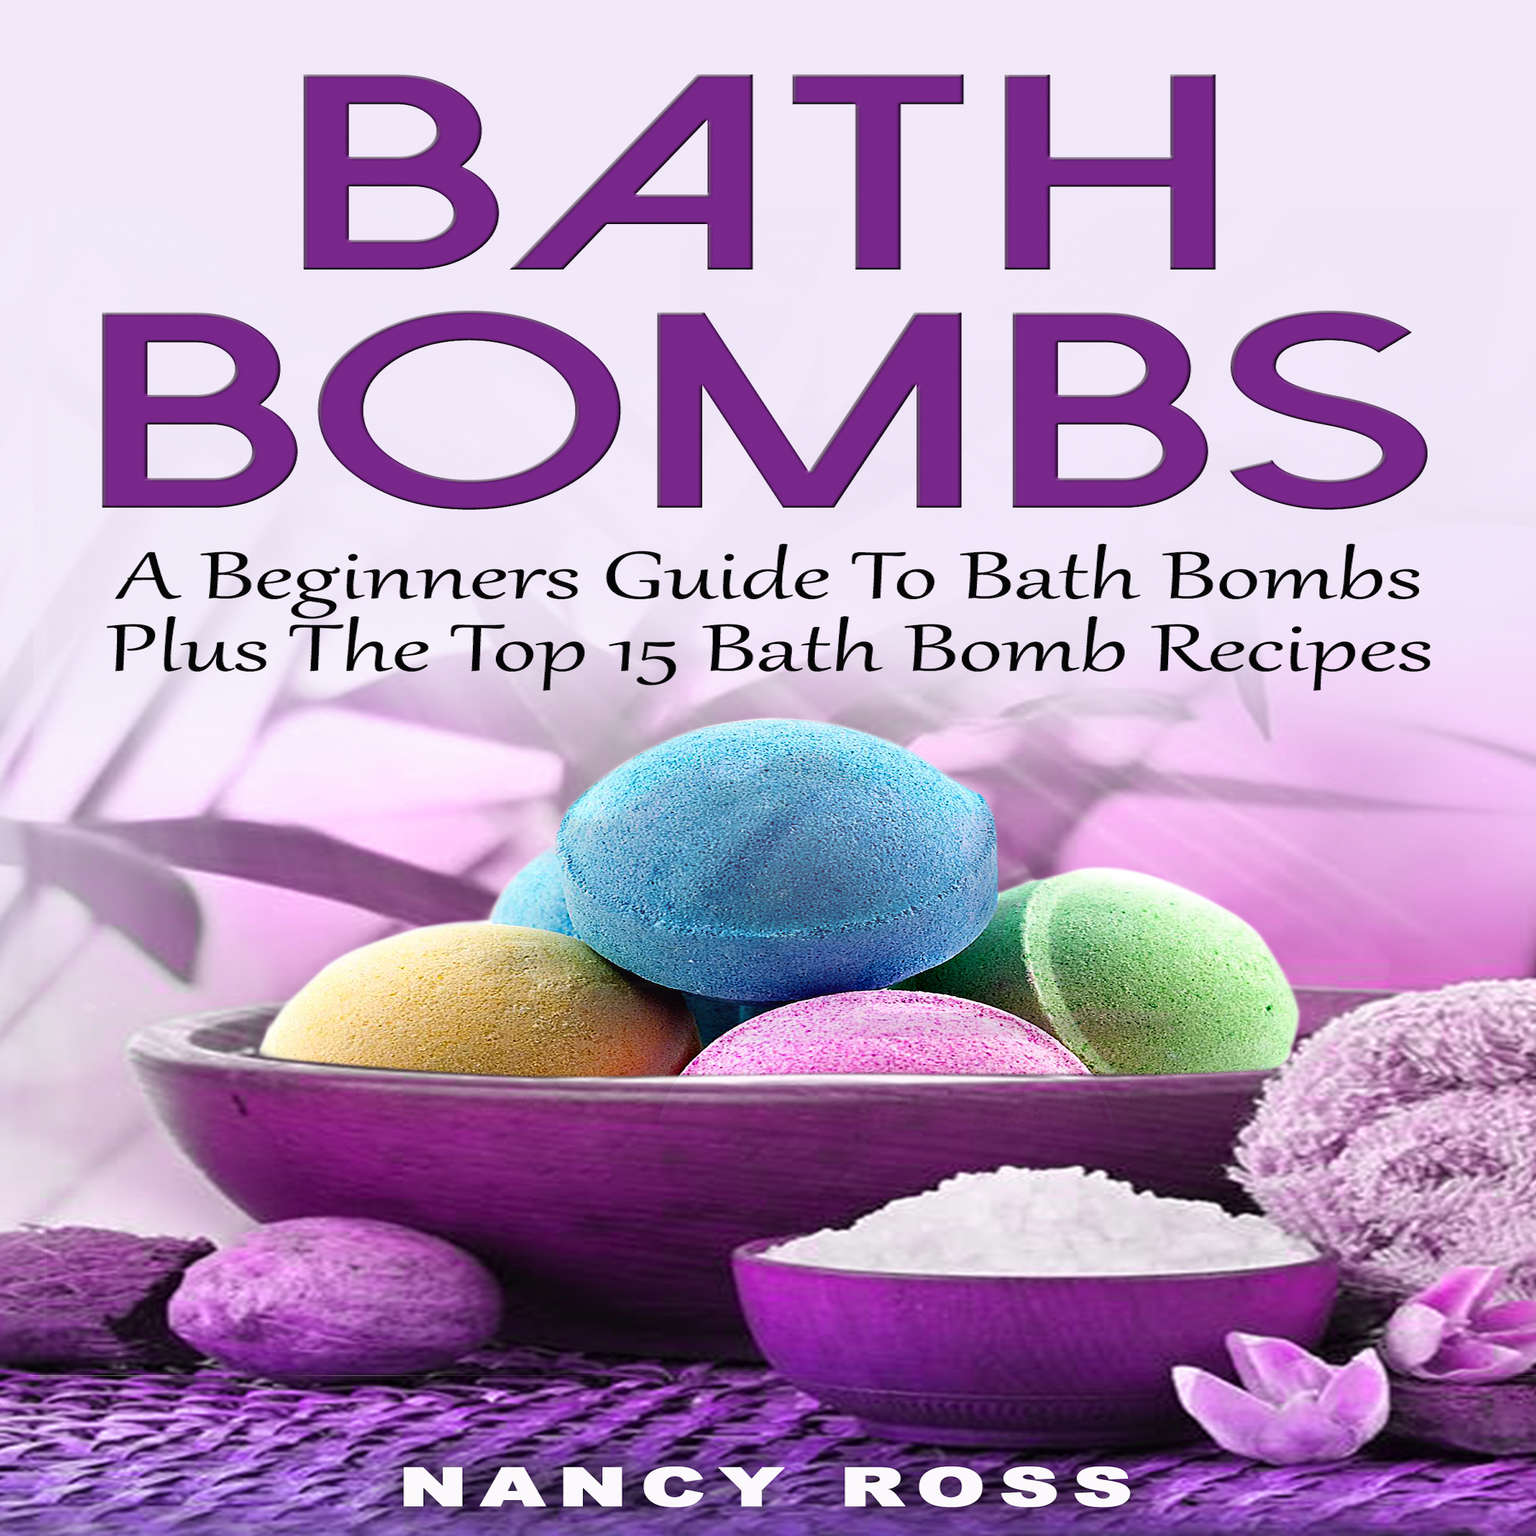 Bath Bombs: A Beginners Guide To Bath Bombs Plus The Top 15 Bath Bomb Recipes Audiobook, by Nancy Ross